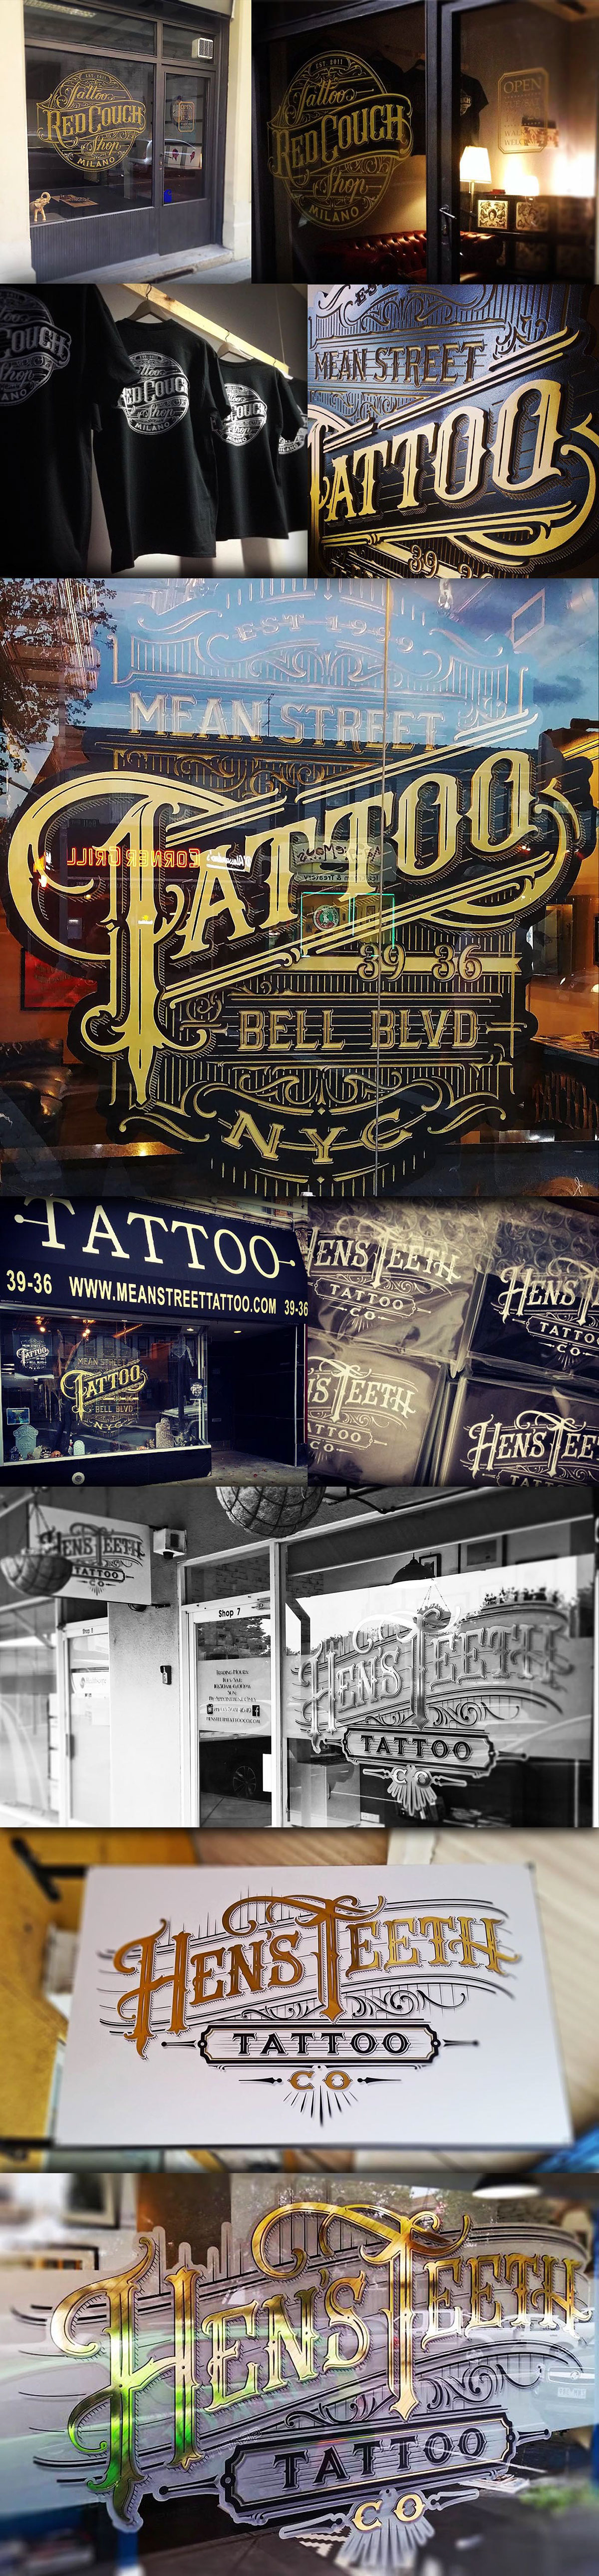 Tattoo Parlours on Behance                                                                                                                                                                                 More